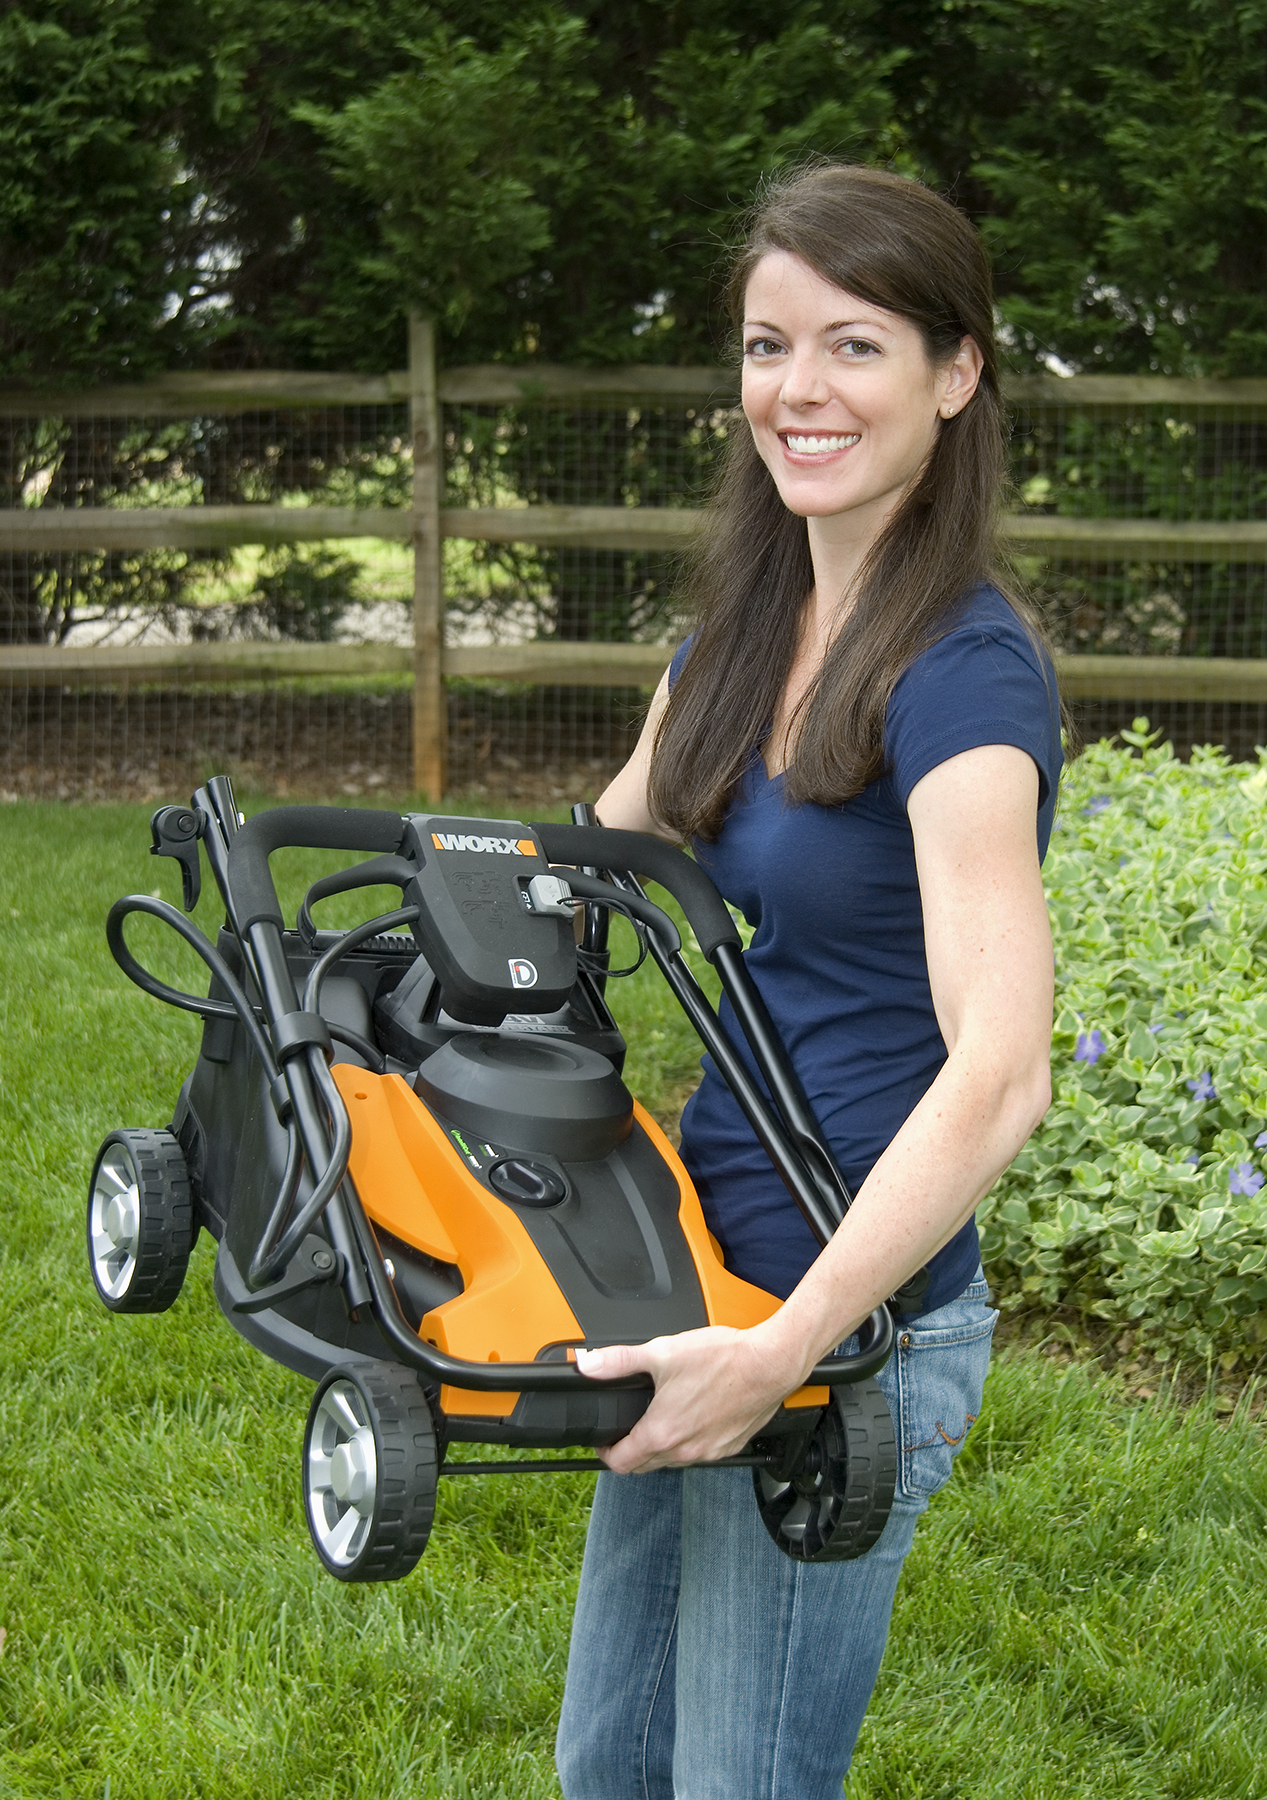 Go Green This Spring With A New Worx Cordless Lawnmower